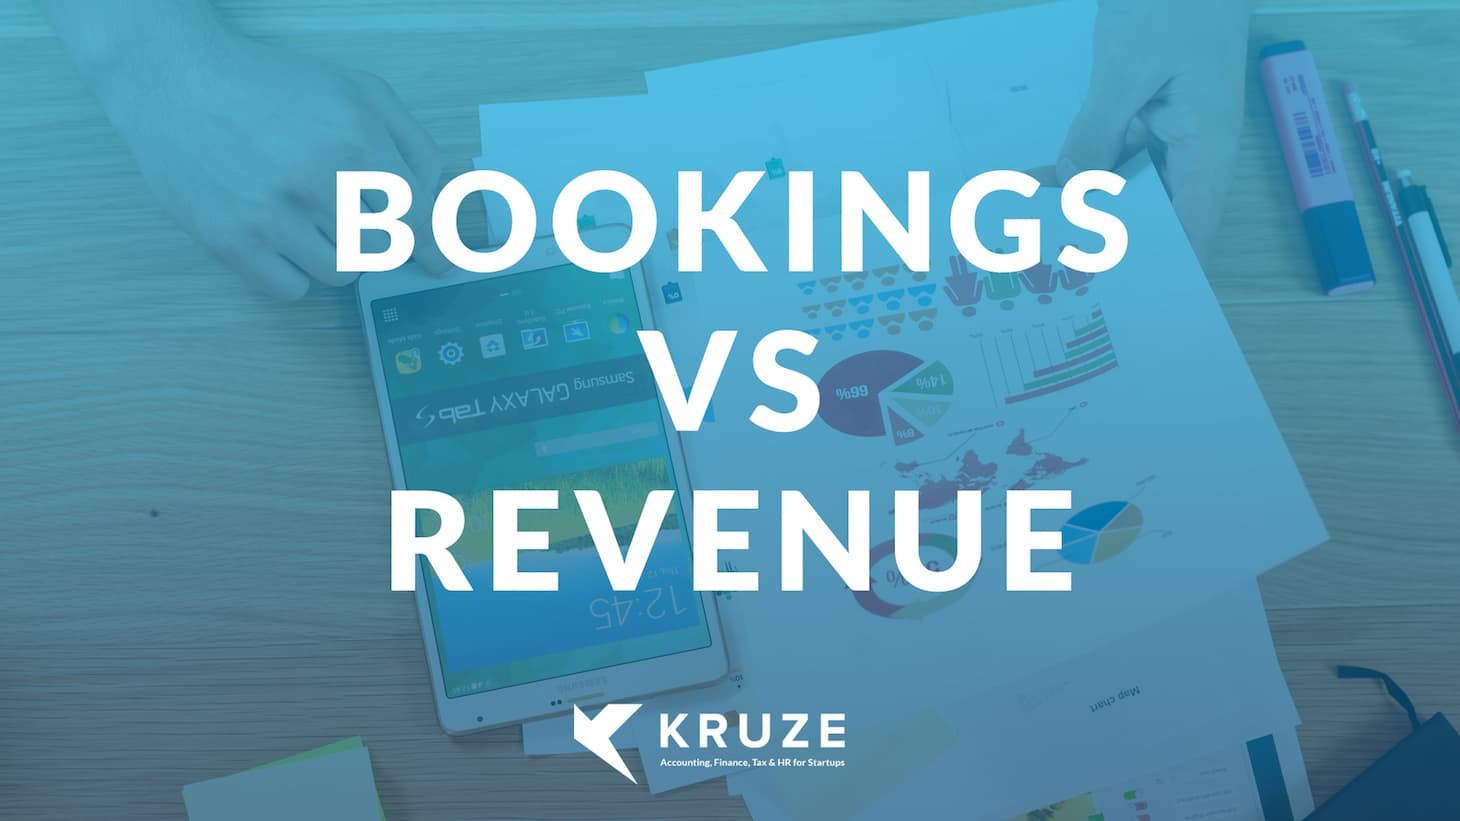 Bookings vs Revenue